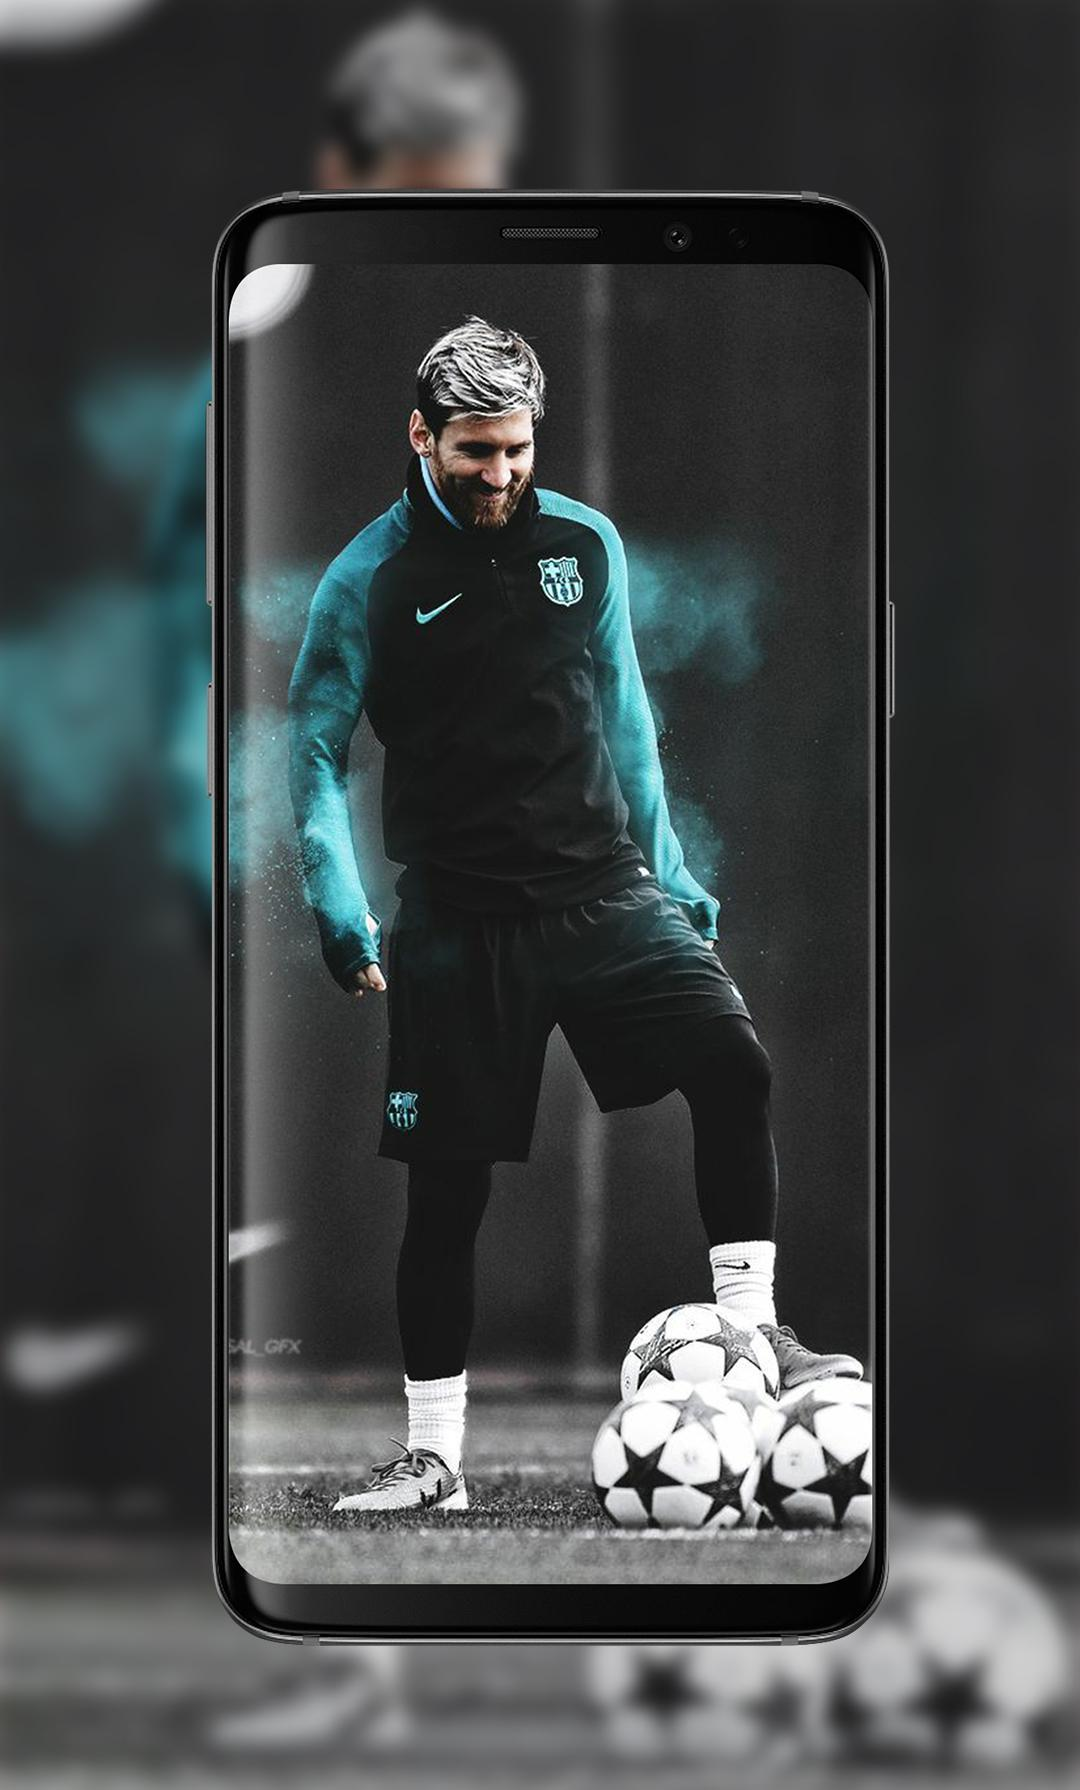 Lionel Messi Free Hd Wallpaper 2020 Leo Messi For Android Apk Download